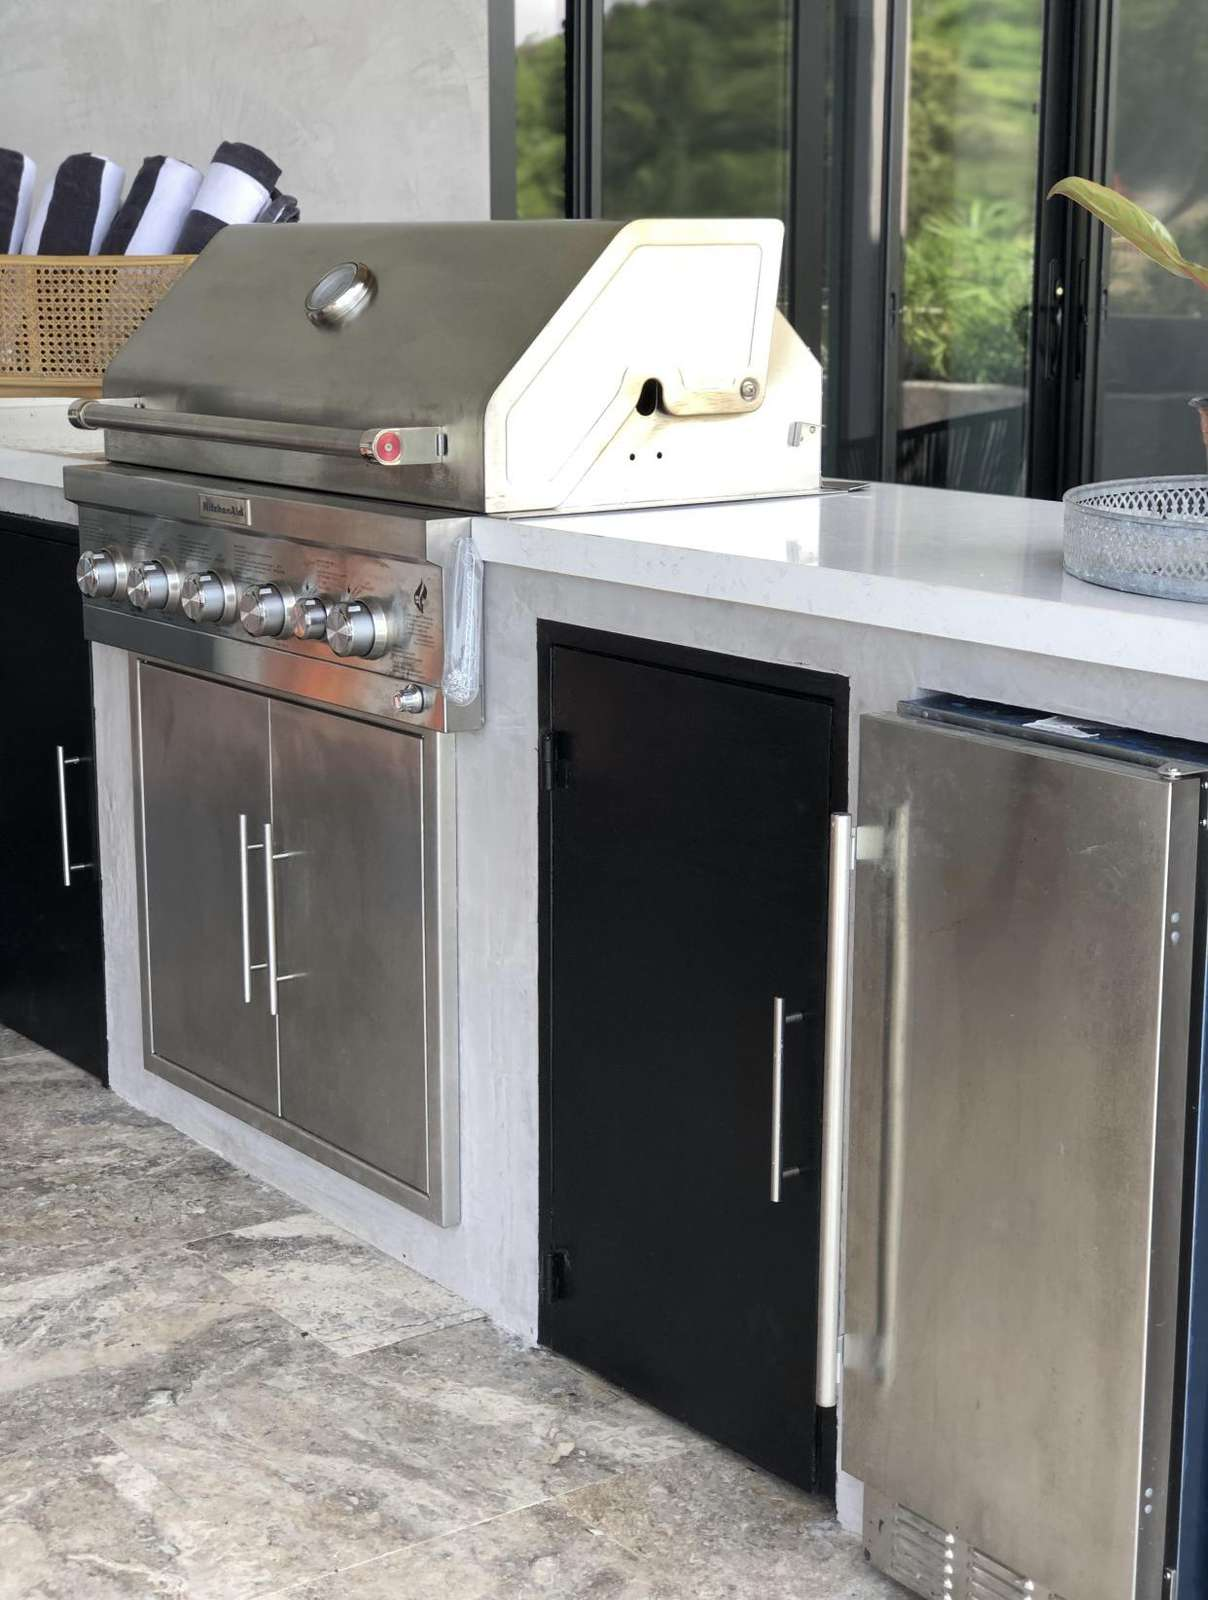 Outdoor kitchen area, BBQ gas grill, icemaker, refrigerator